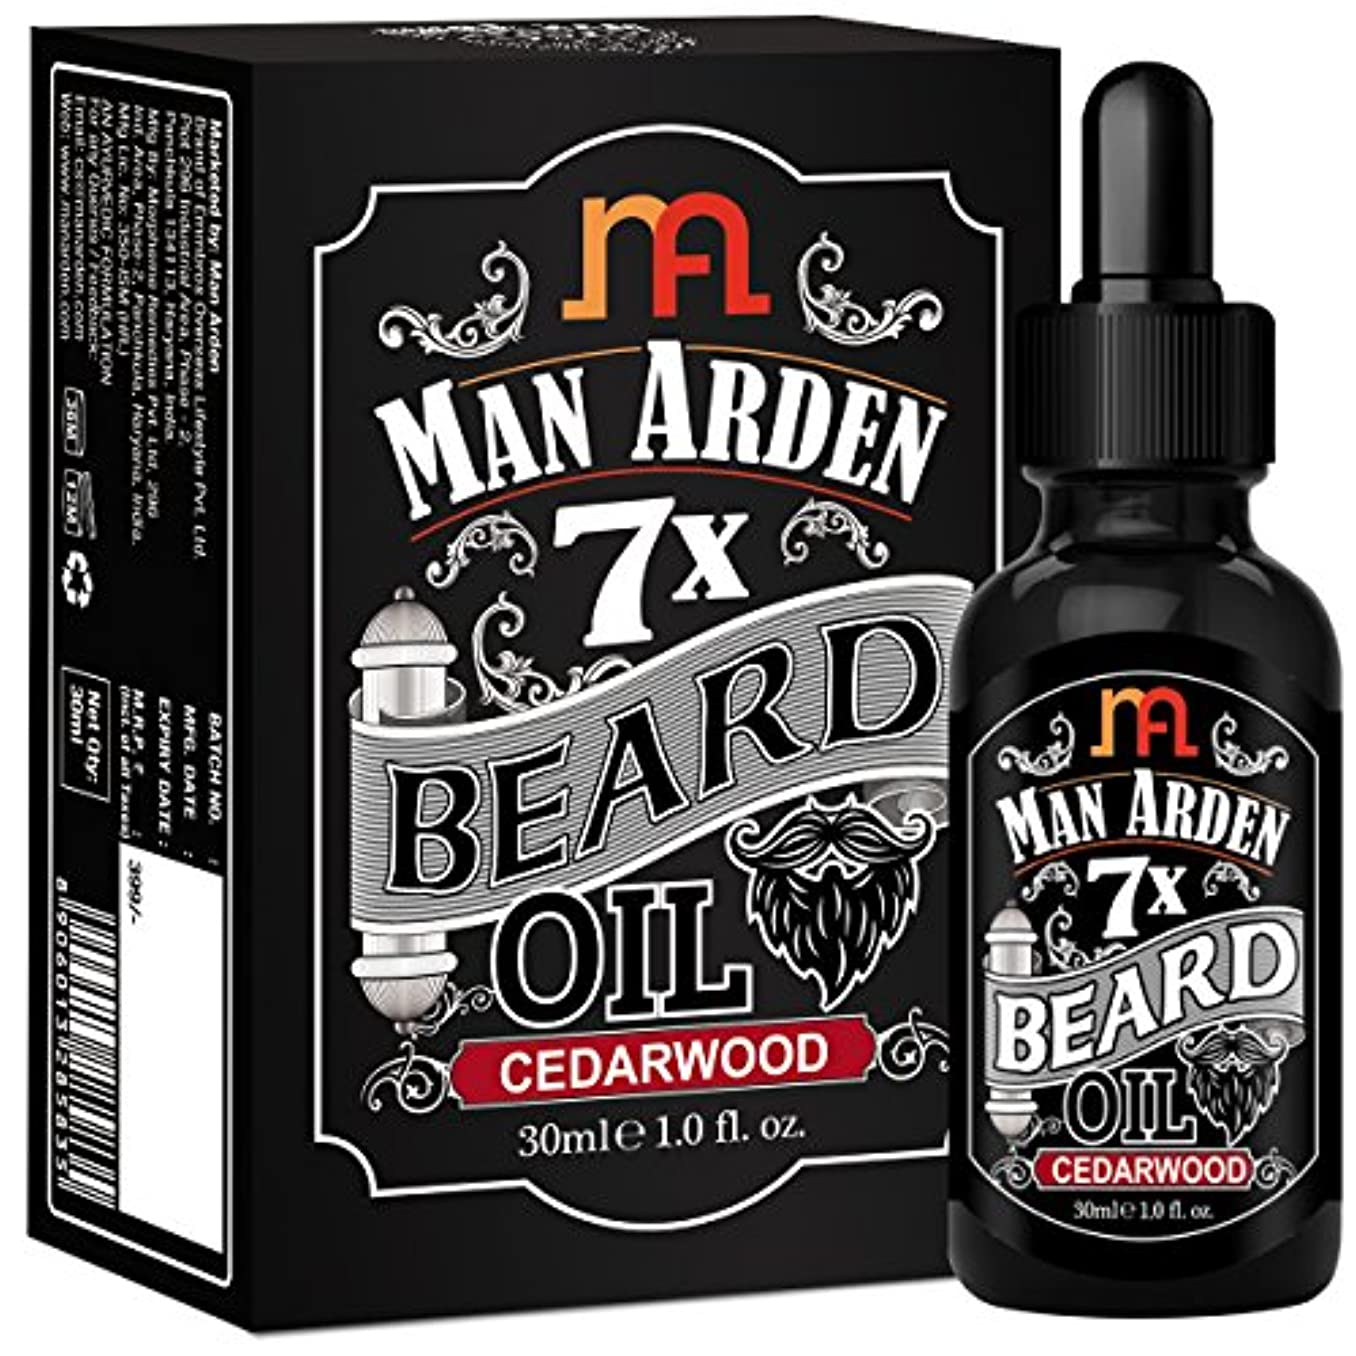 プロフィール雇ったぺディカブMan Arden 7X Beard Oil 30ml (Cedarwood) - 7 Premium Oils Blend For Beard Growth & Nourishment